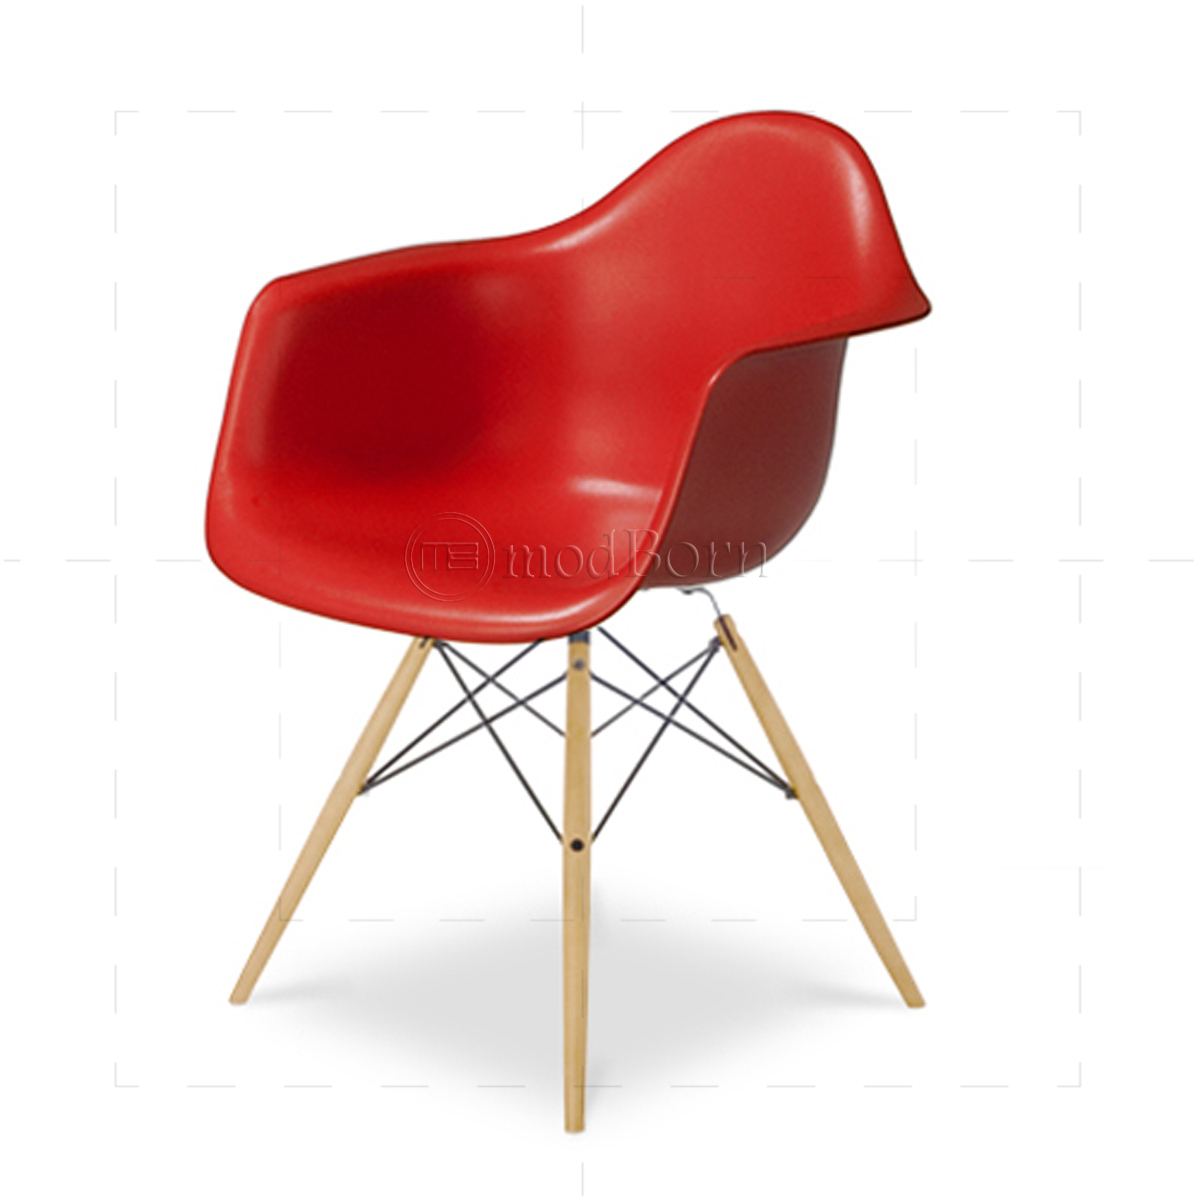 Eames style dining daw arm chair red replica for Eames chair replica uk